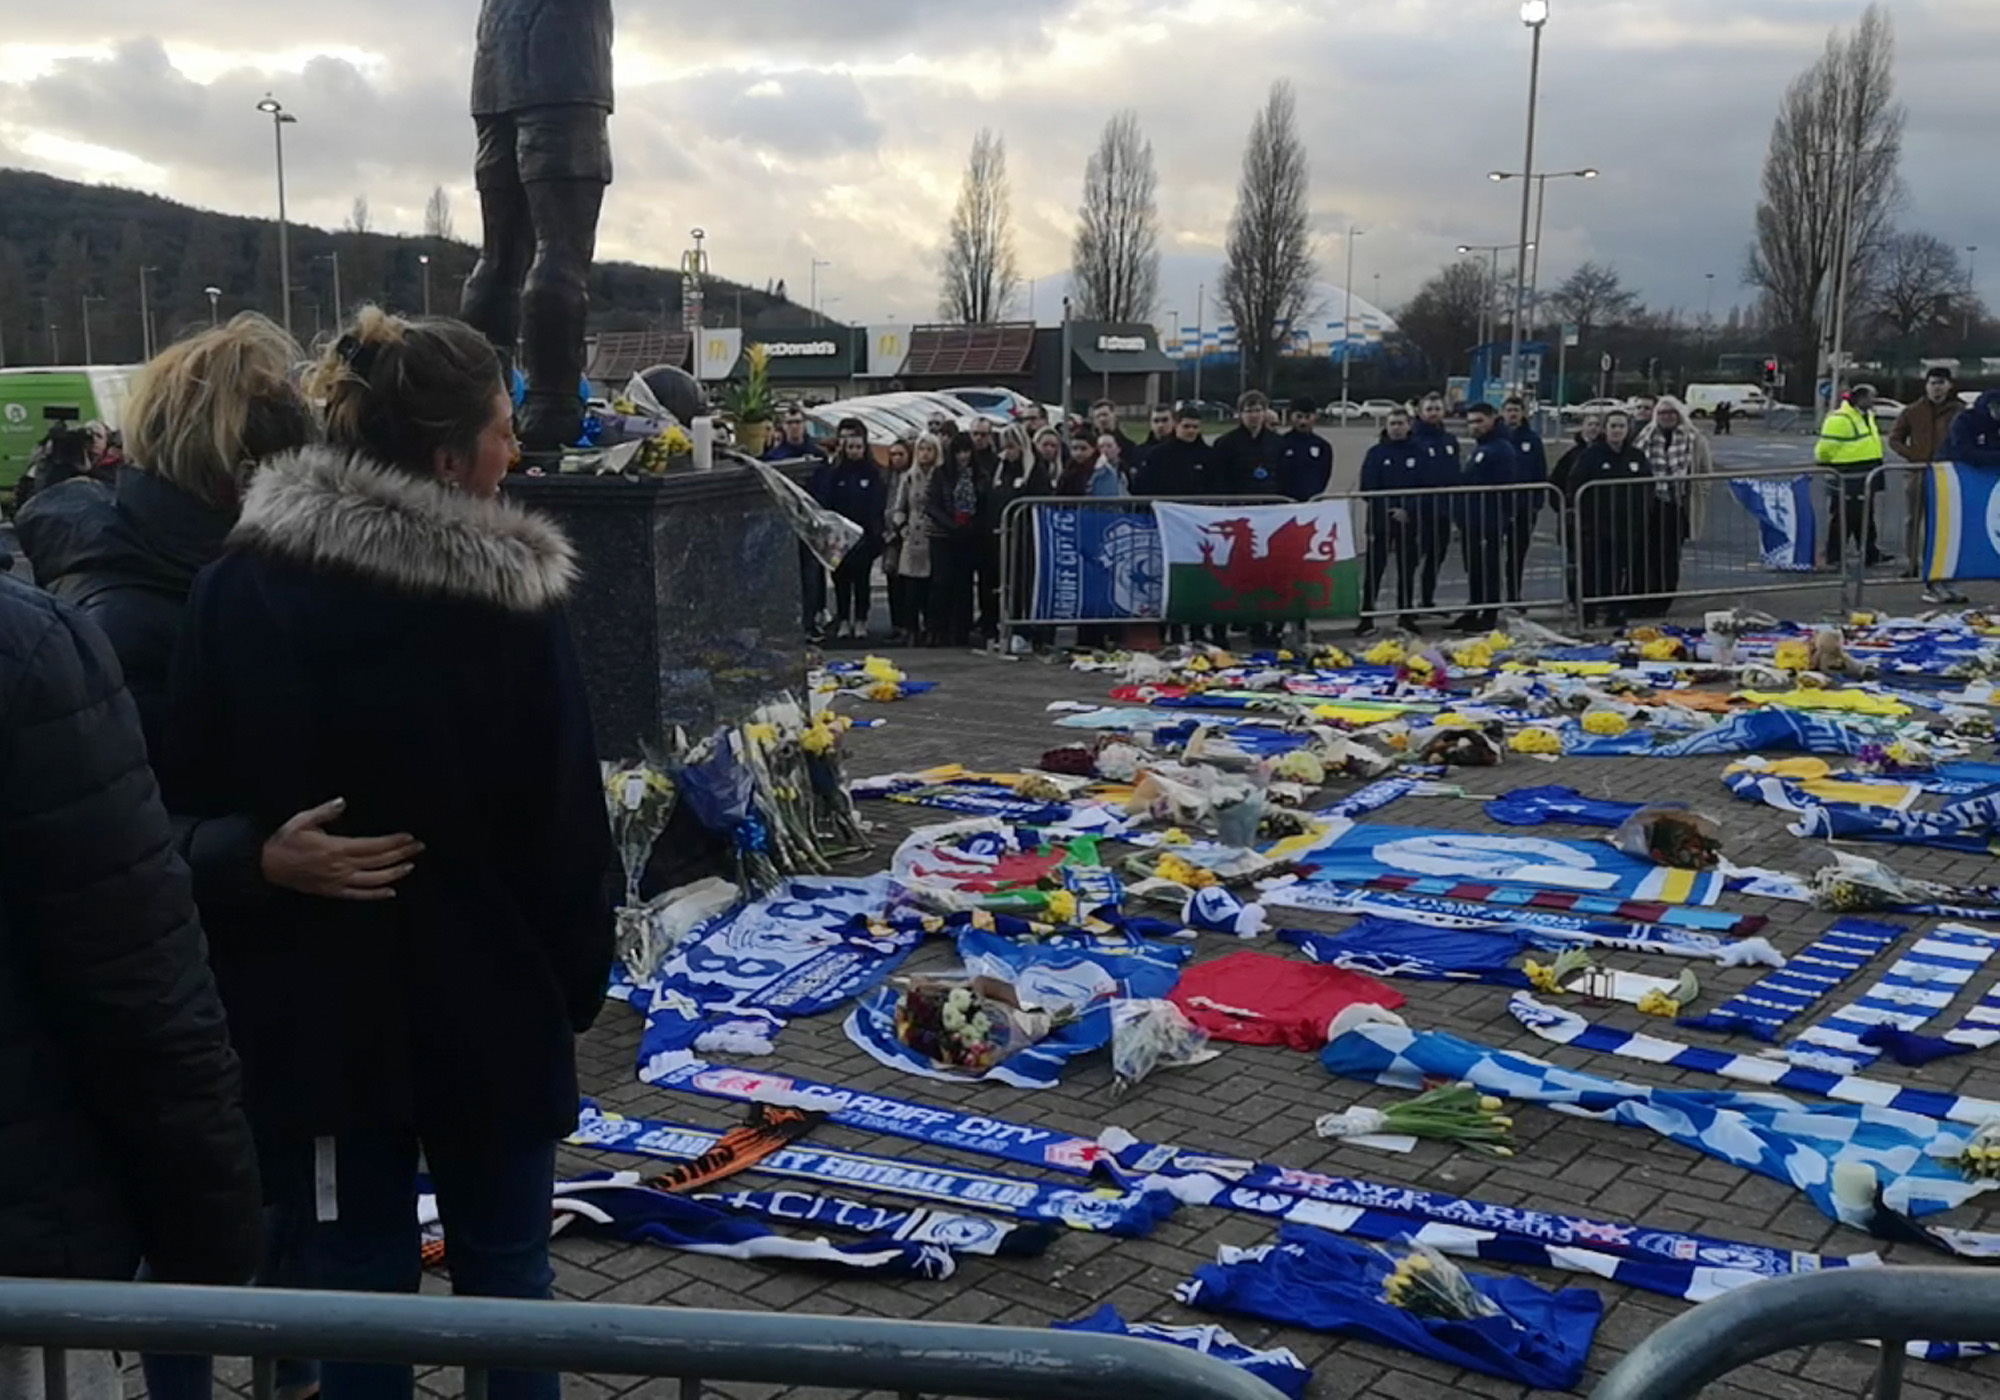 Search For Emiliano Sala To Resume After £130,000 Raised On GoFundMe